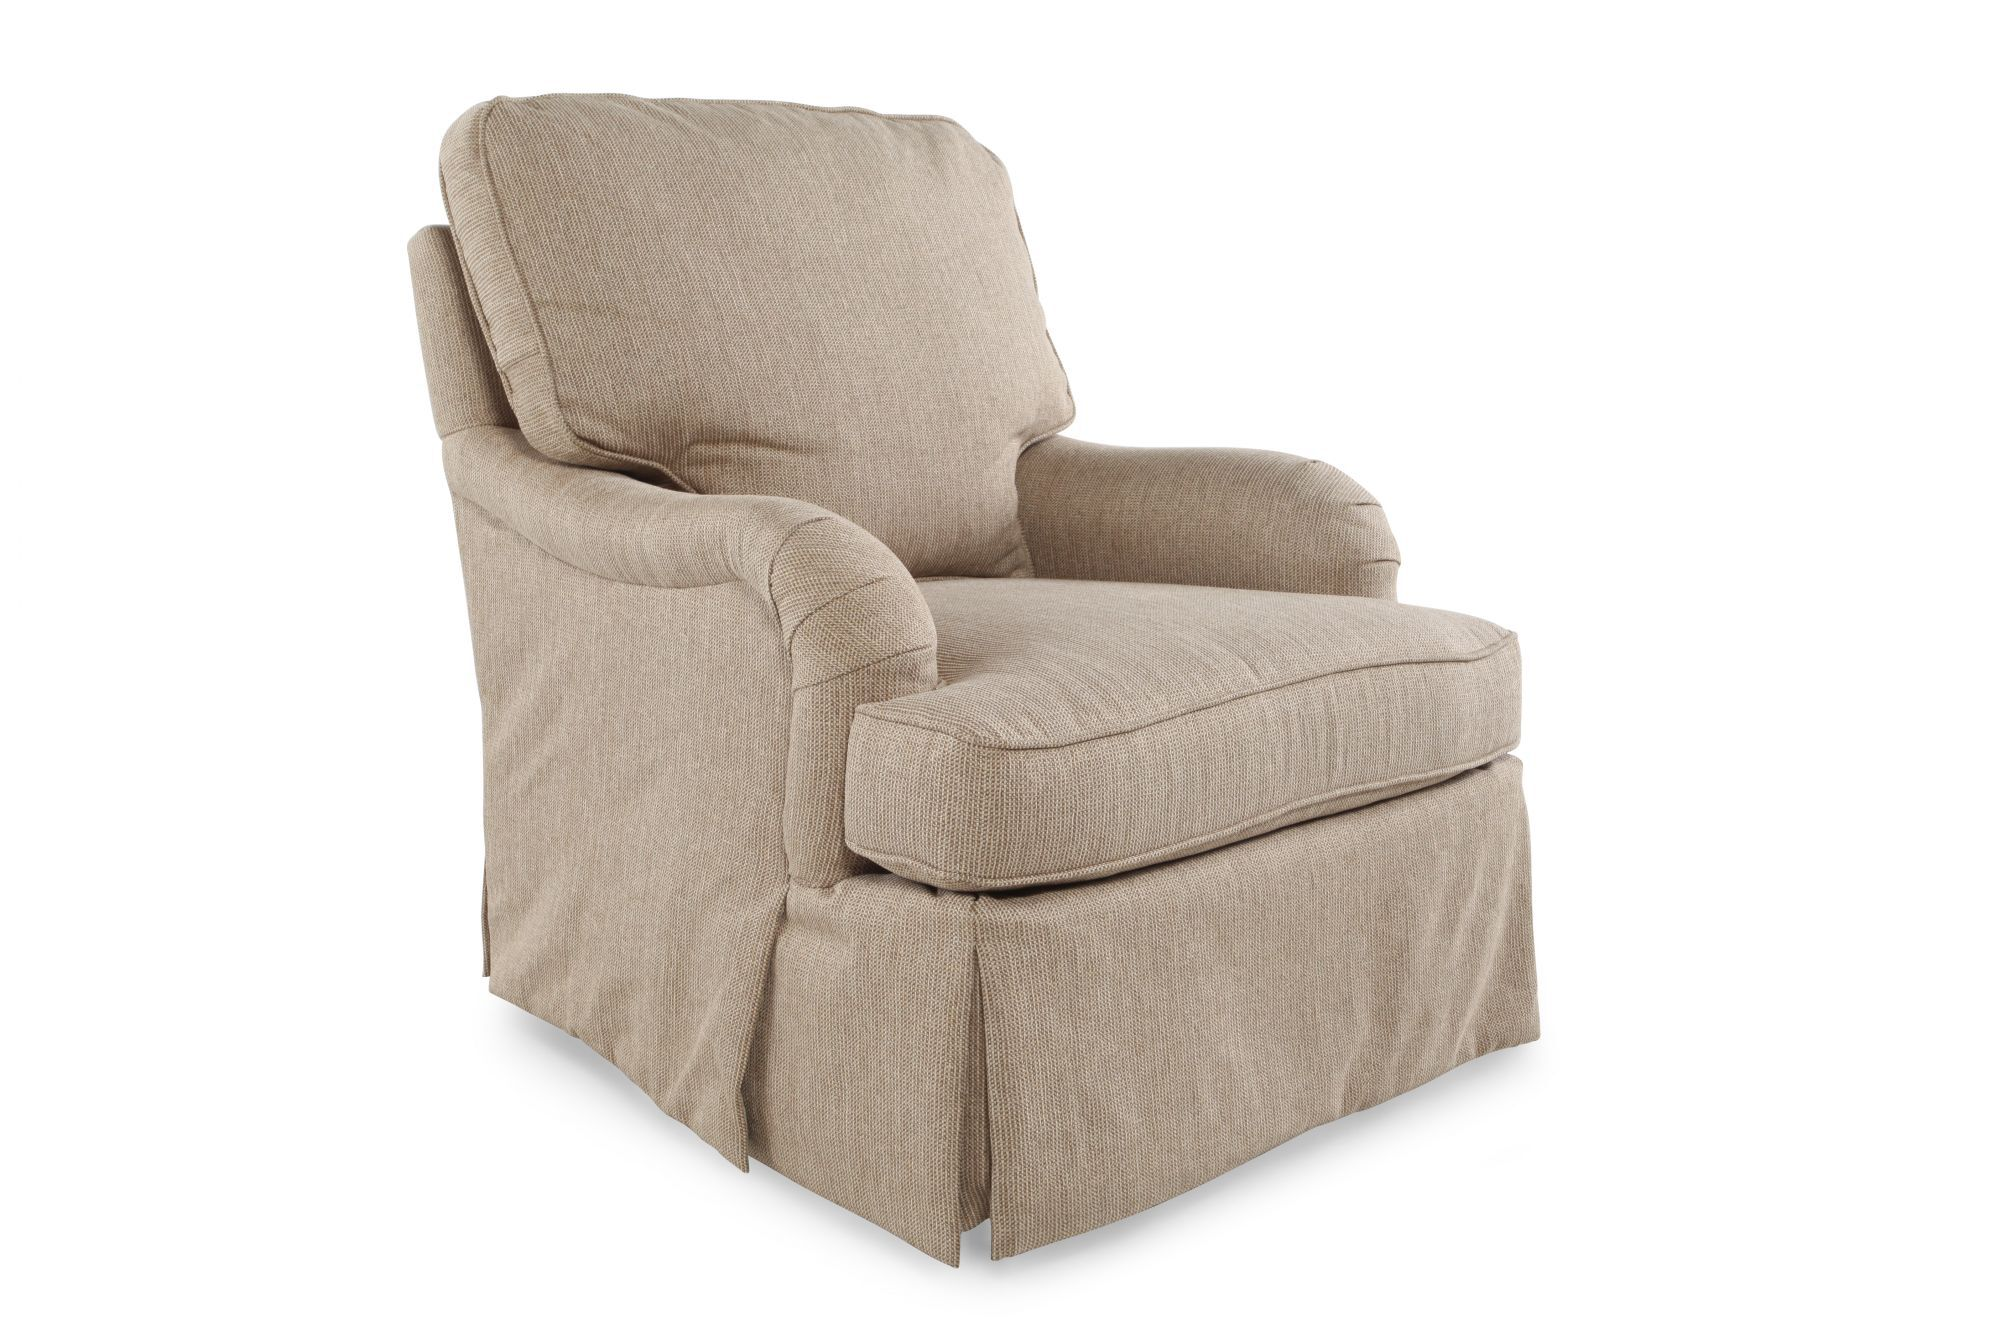 Sam Moore Chairs English Arm Contemporary 31 Swivel Glider In Cream Mathis